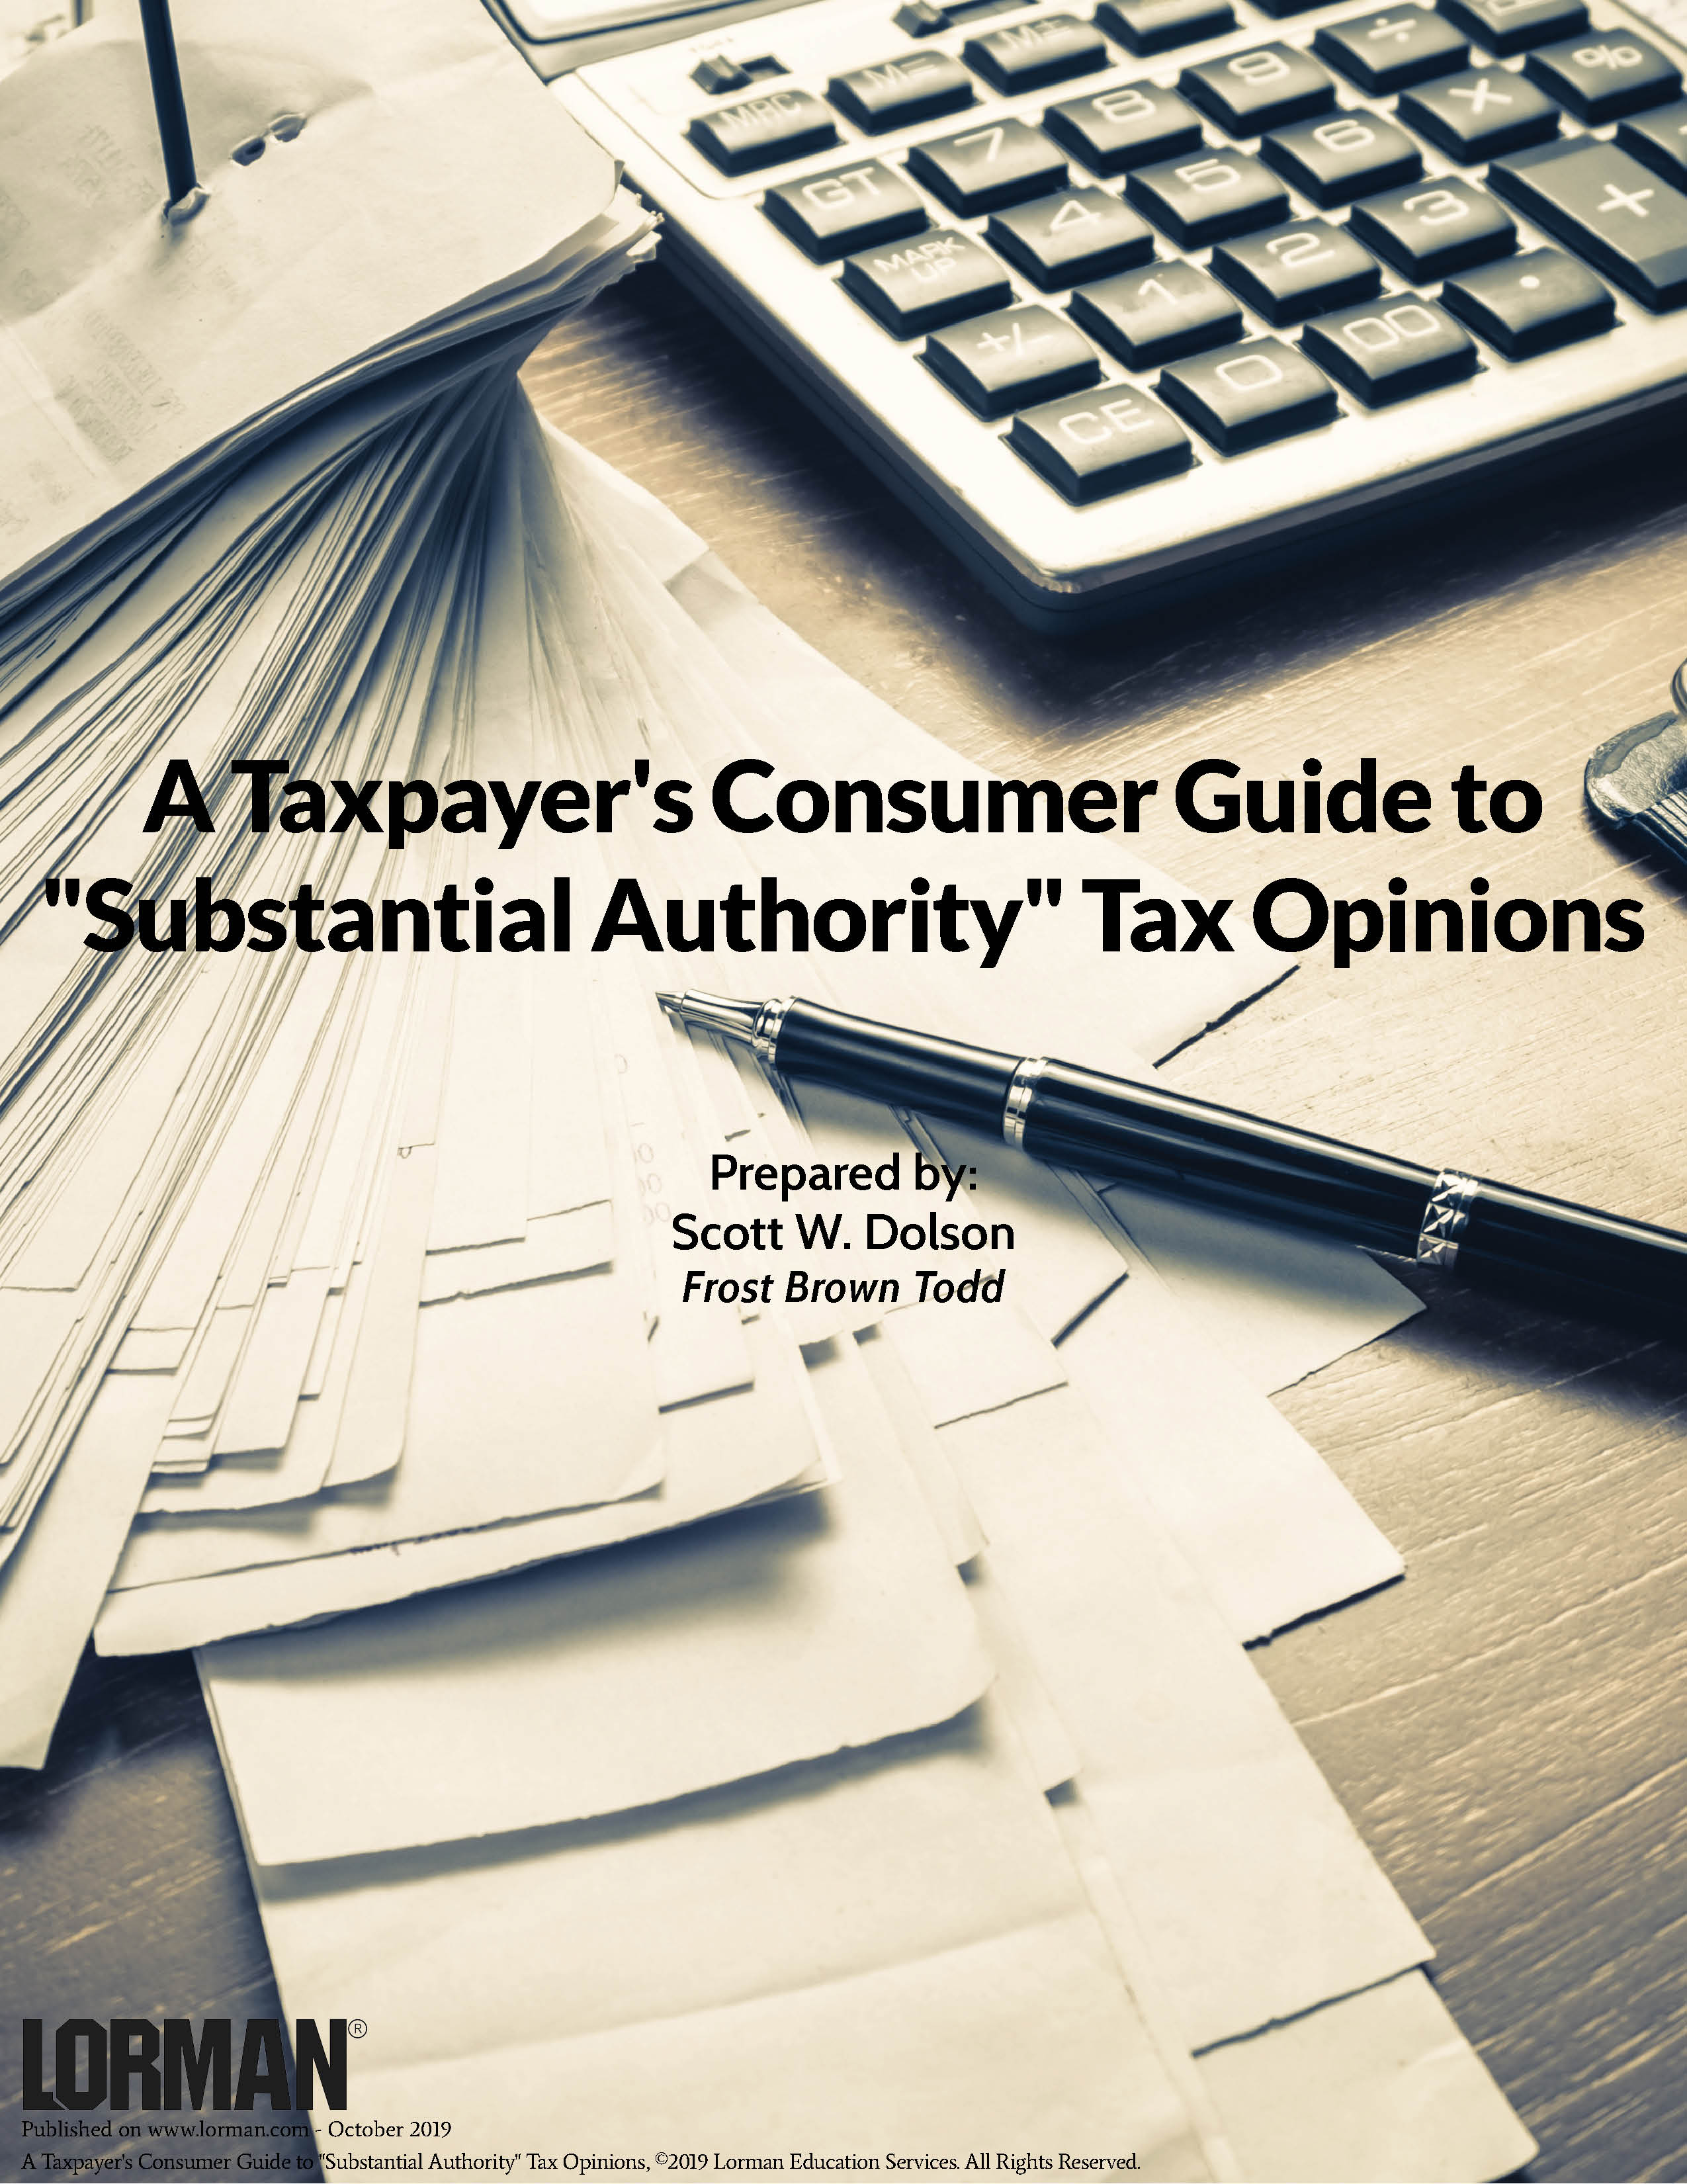 A Taxpayer's Consumer Guide to Substantial Authority Tax Opinions